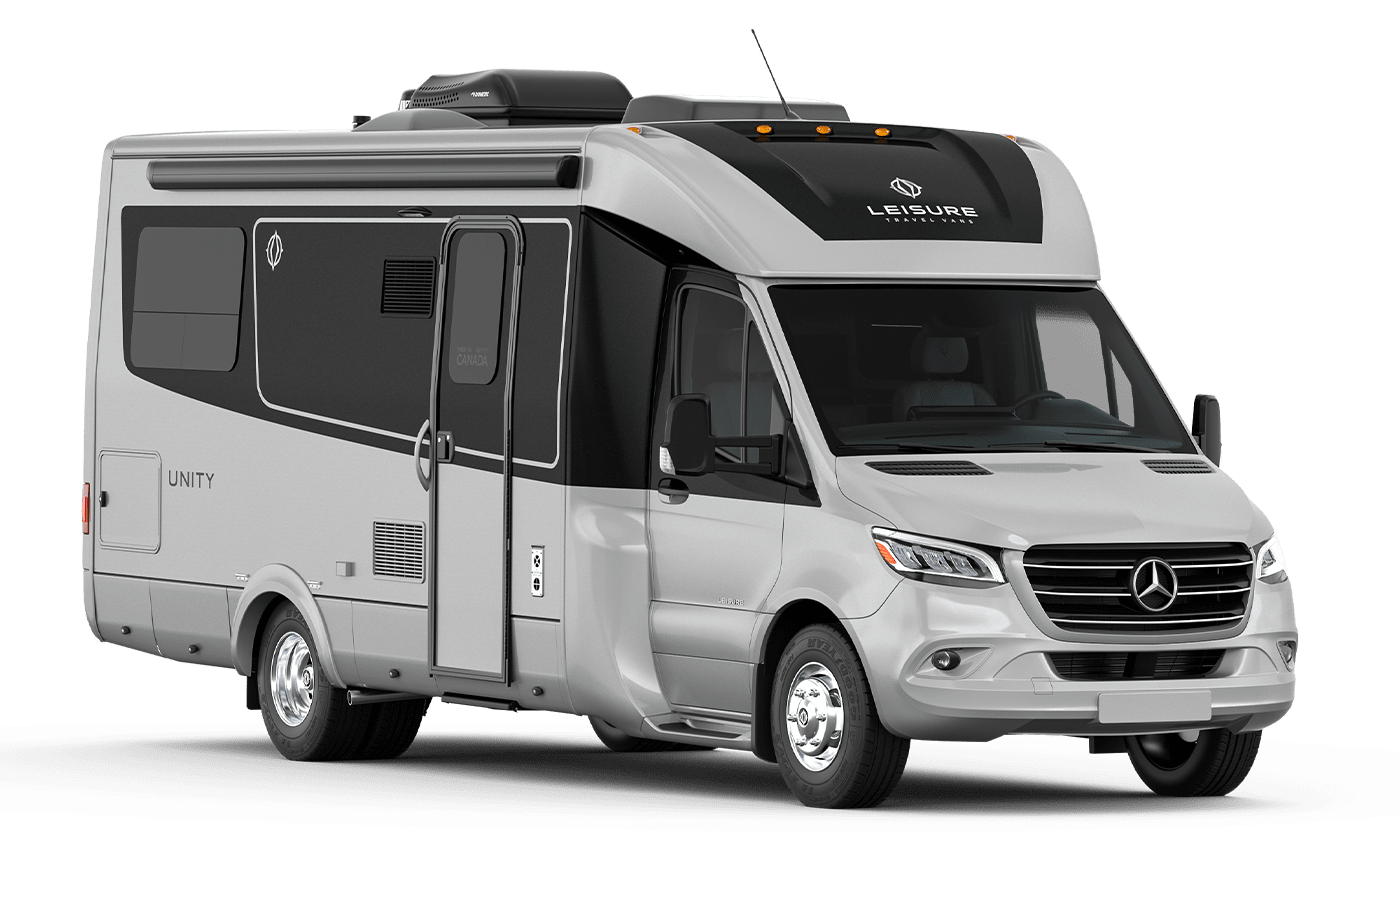 Leisure Travel Van Unity Reviews